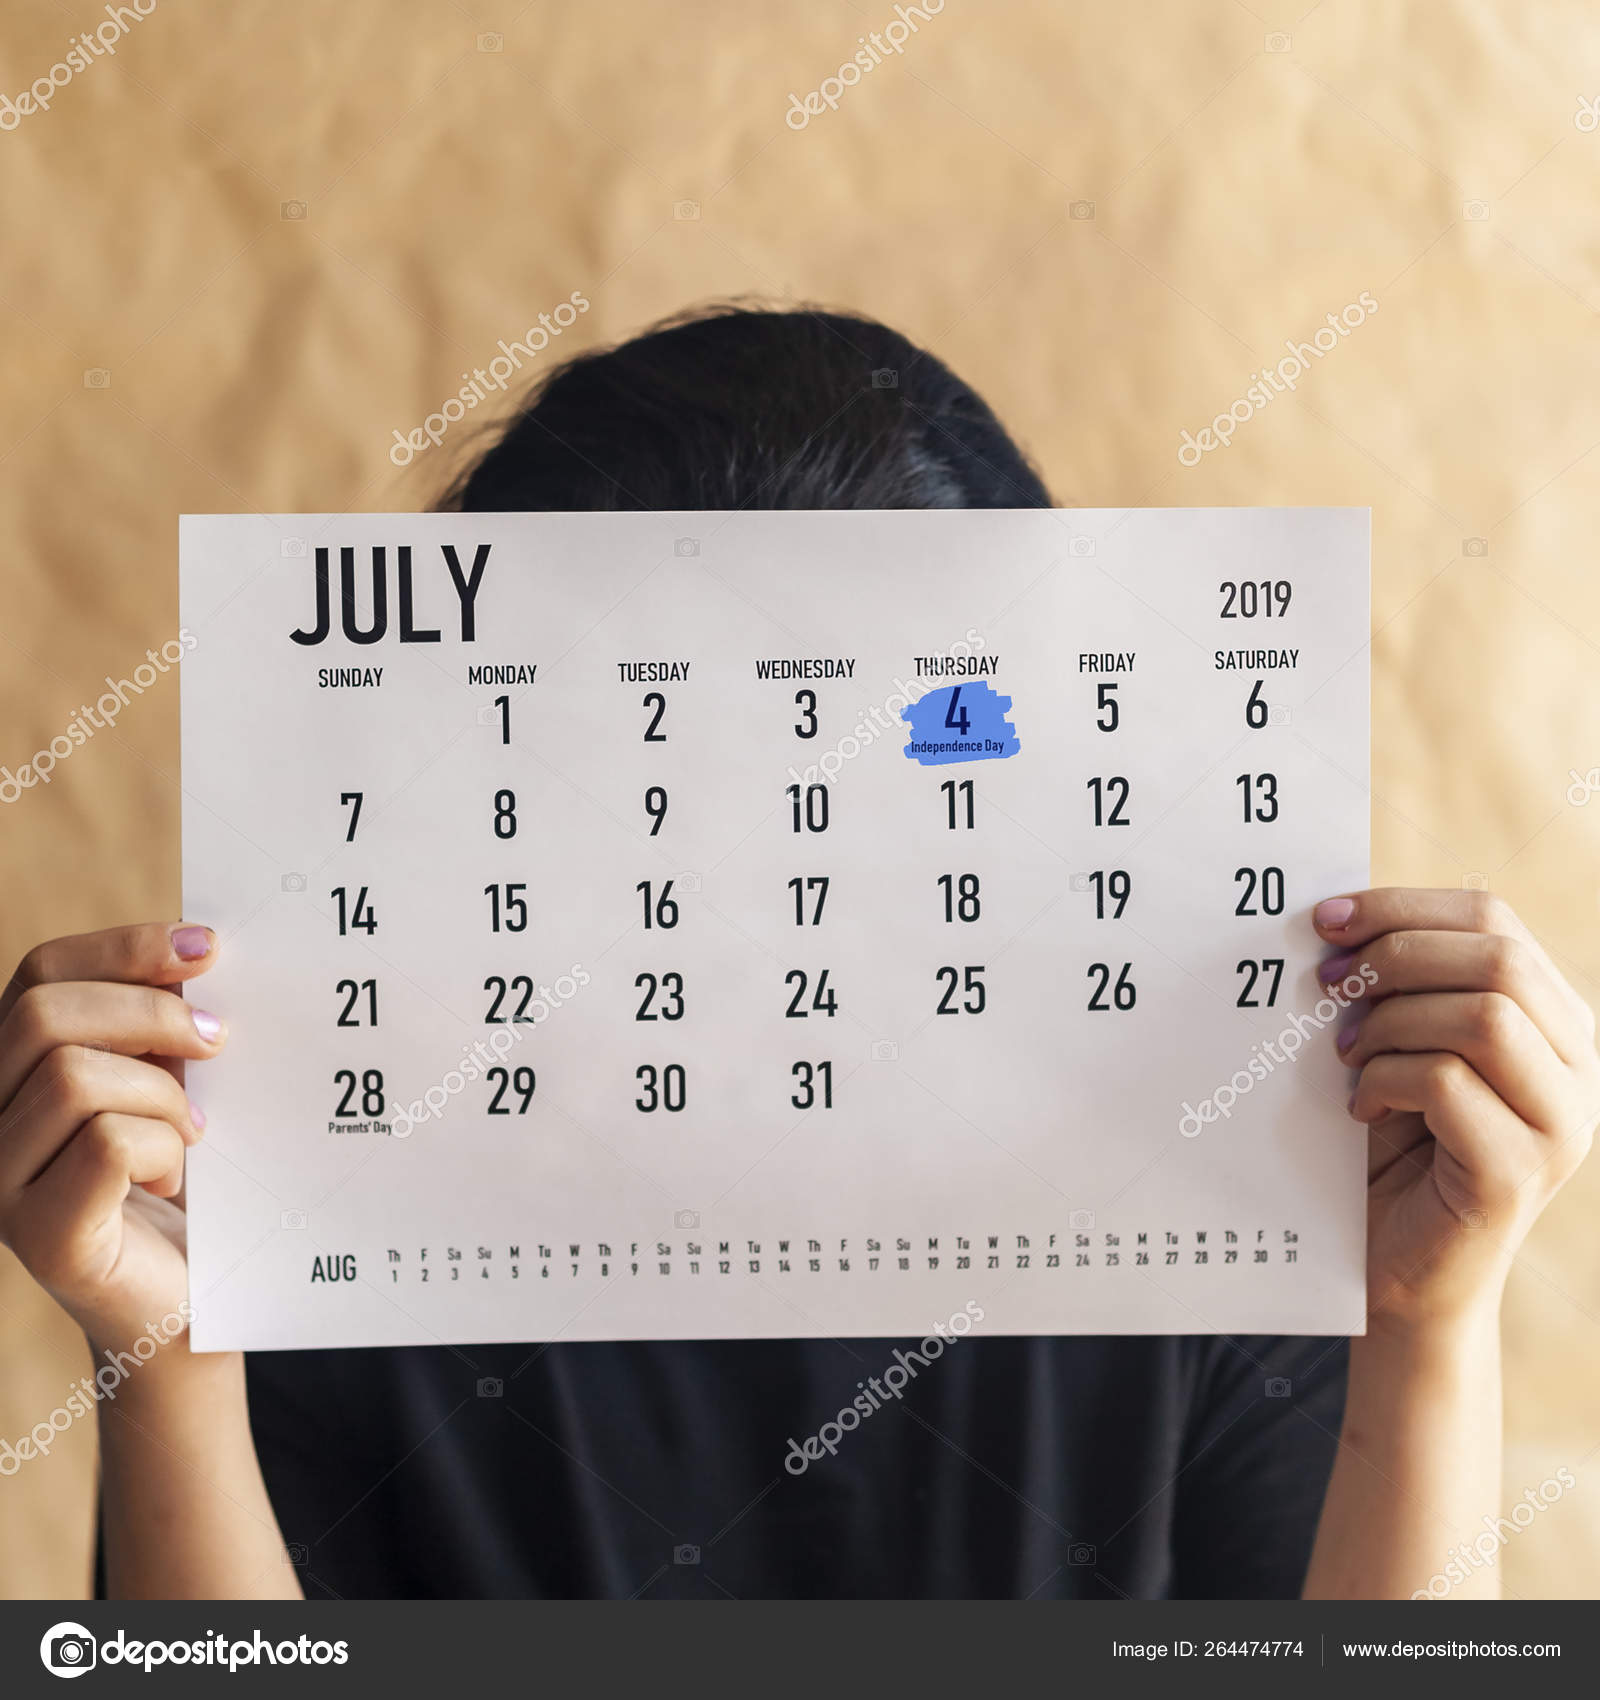 July 4 2019 Calendar Woman holding calendar with marked day July 4, 2019   US